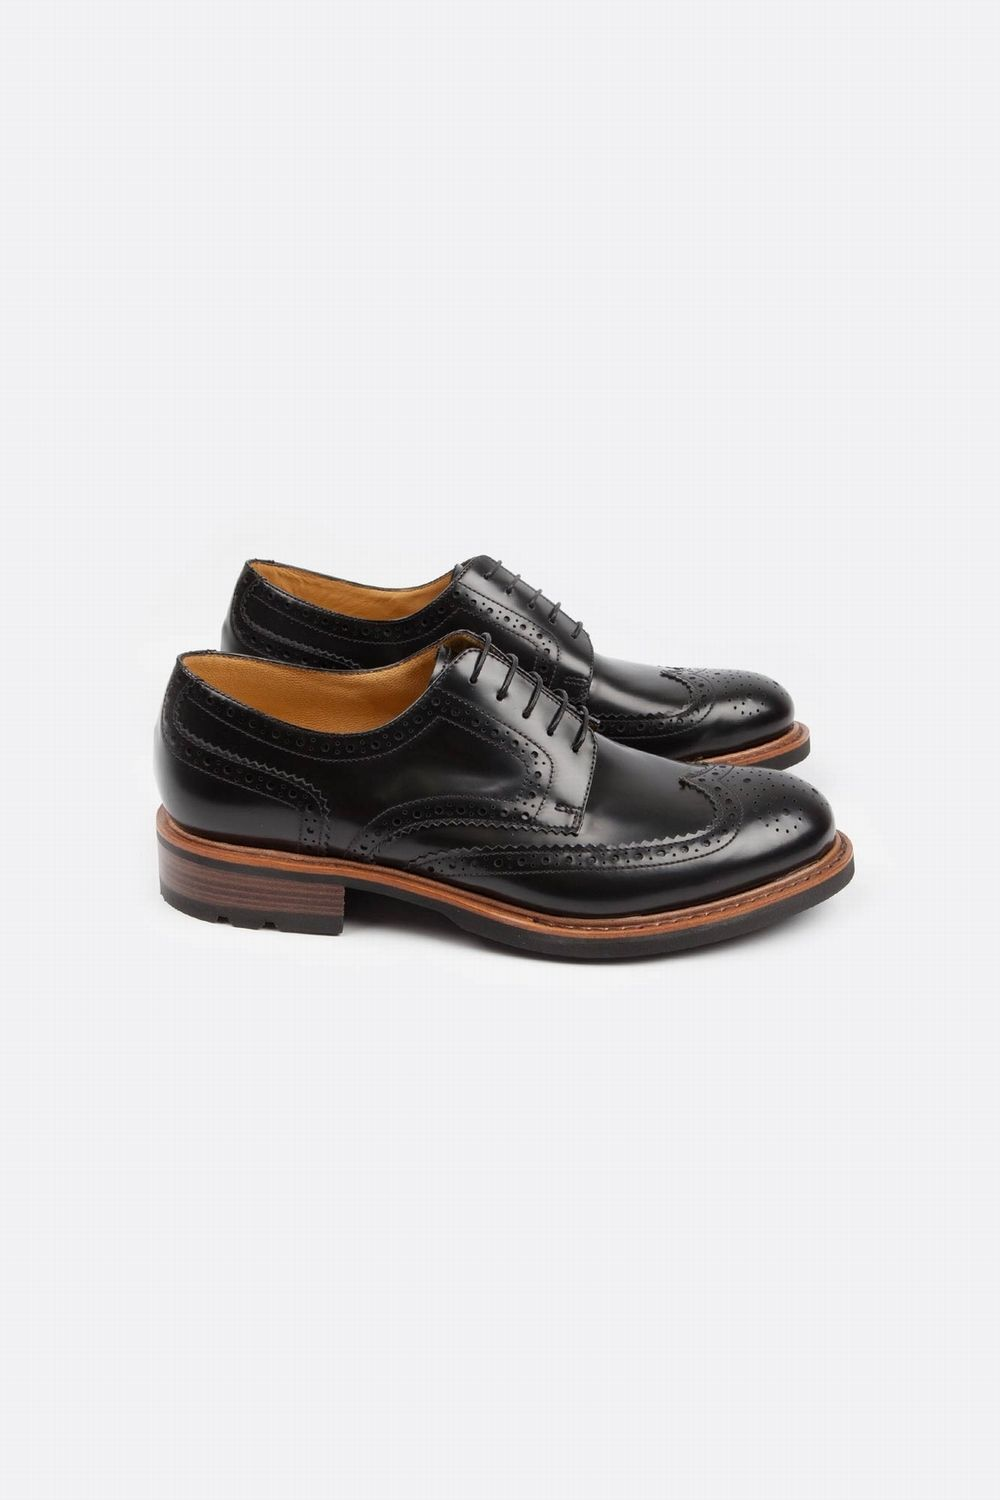 PARABOOT - DERBIES OXFORD WELLES